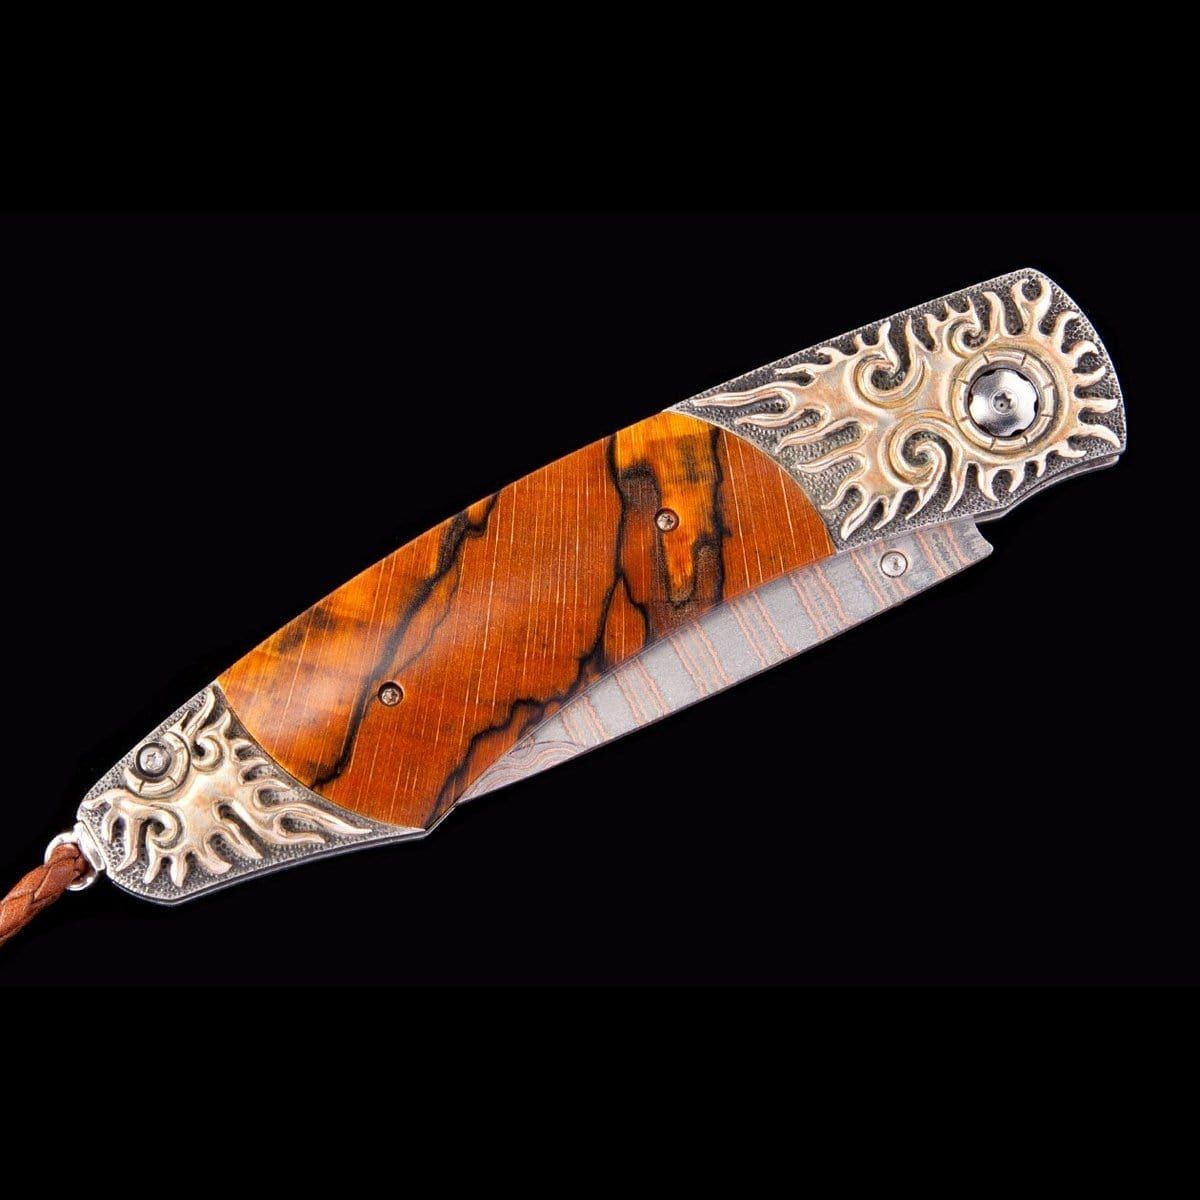 Spearpoint Mayan Flame Limited Edition Knife - B12 MAYAN FLAME-William Henry-Renee Taylor Gallery